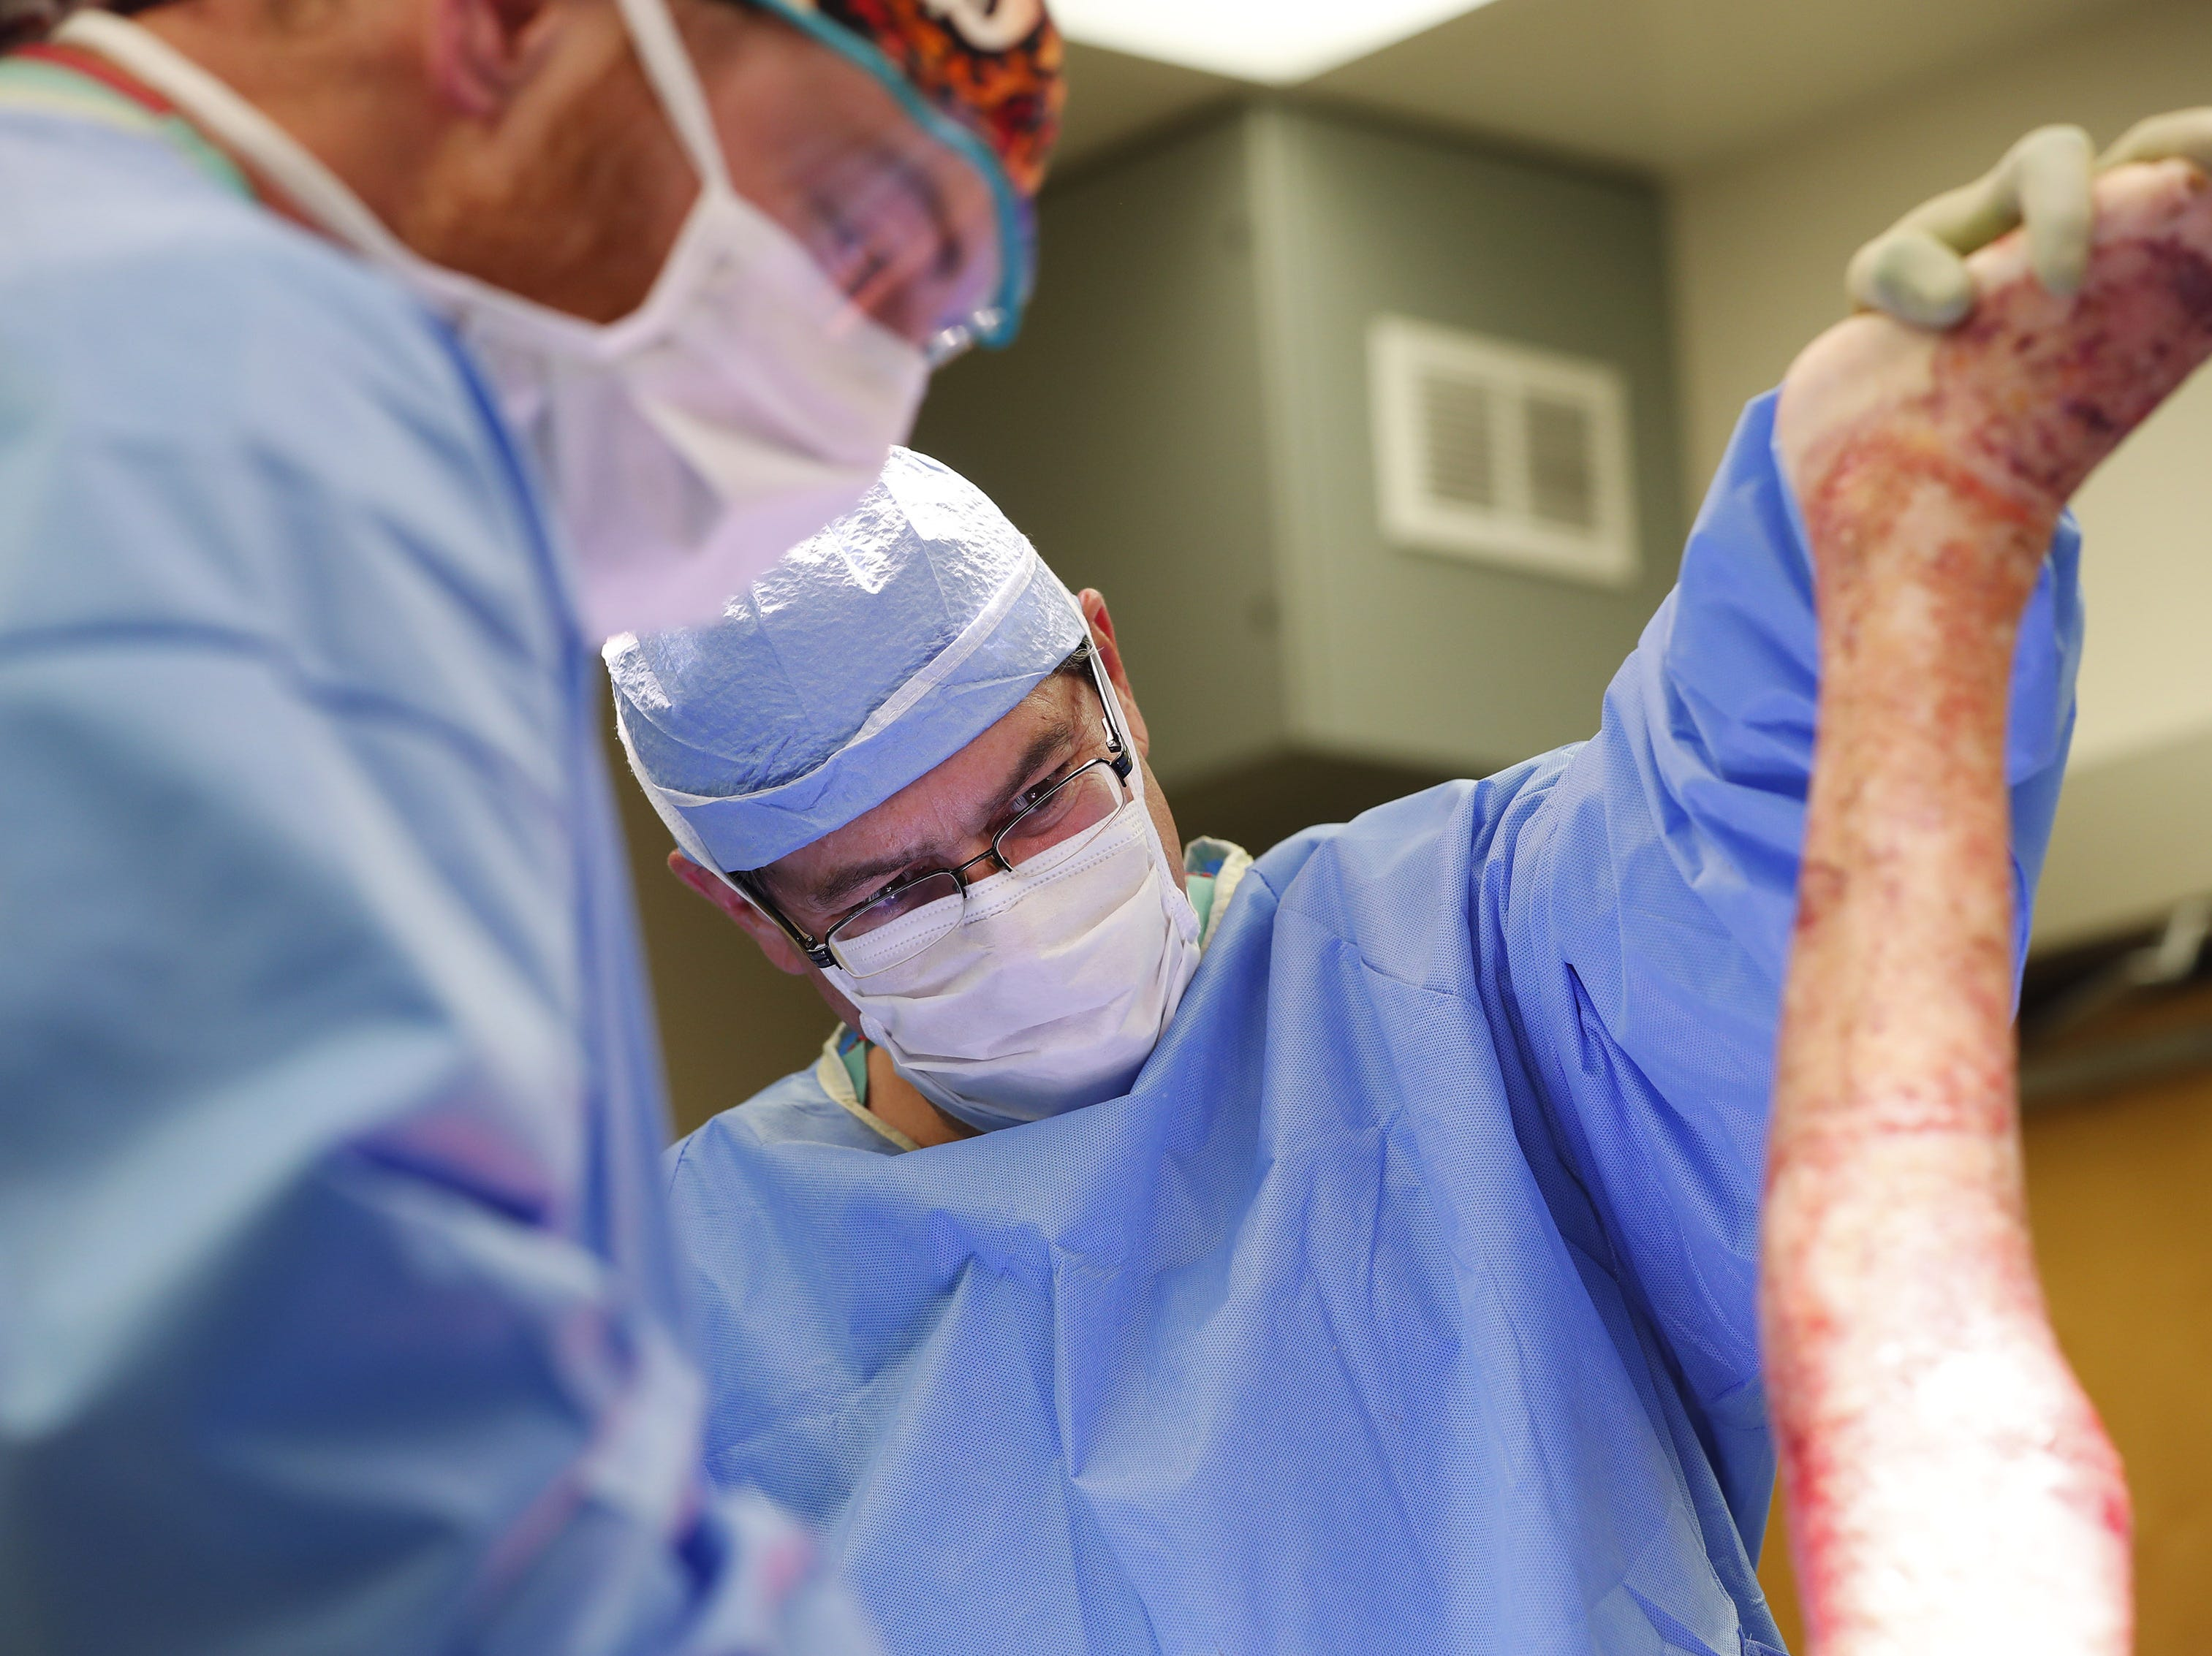 Dr. Kevin Foster assesses Isabella McCune's burns during skin-graft surgery at the Arizona Burn Center in Phoenix May 24, 2018. She was severely burned in a home accident in March.